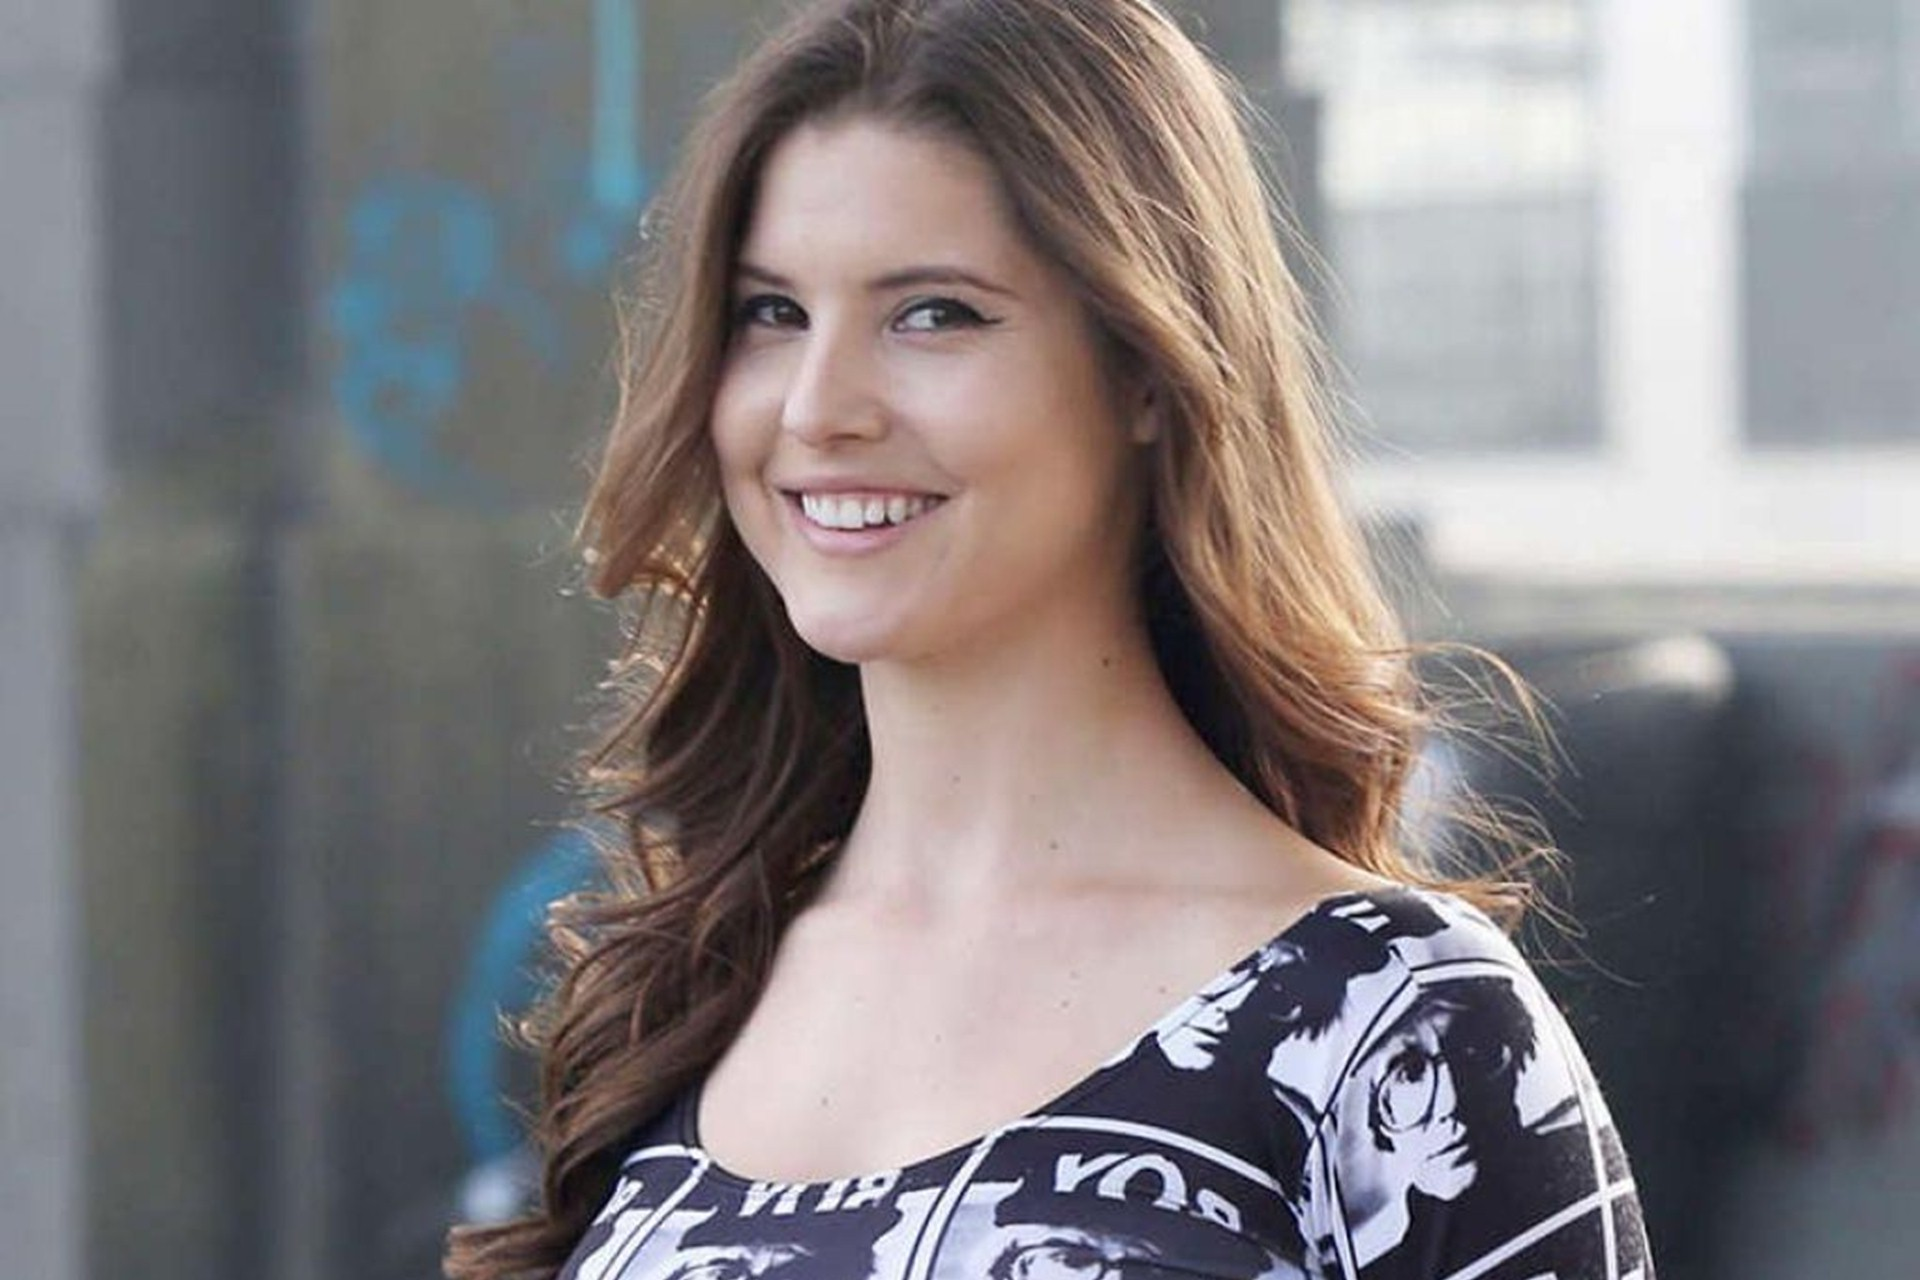 cute amanda cerny laugh computer hd background free photos